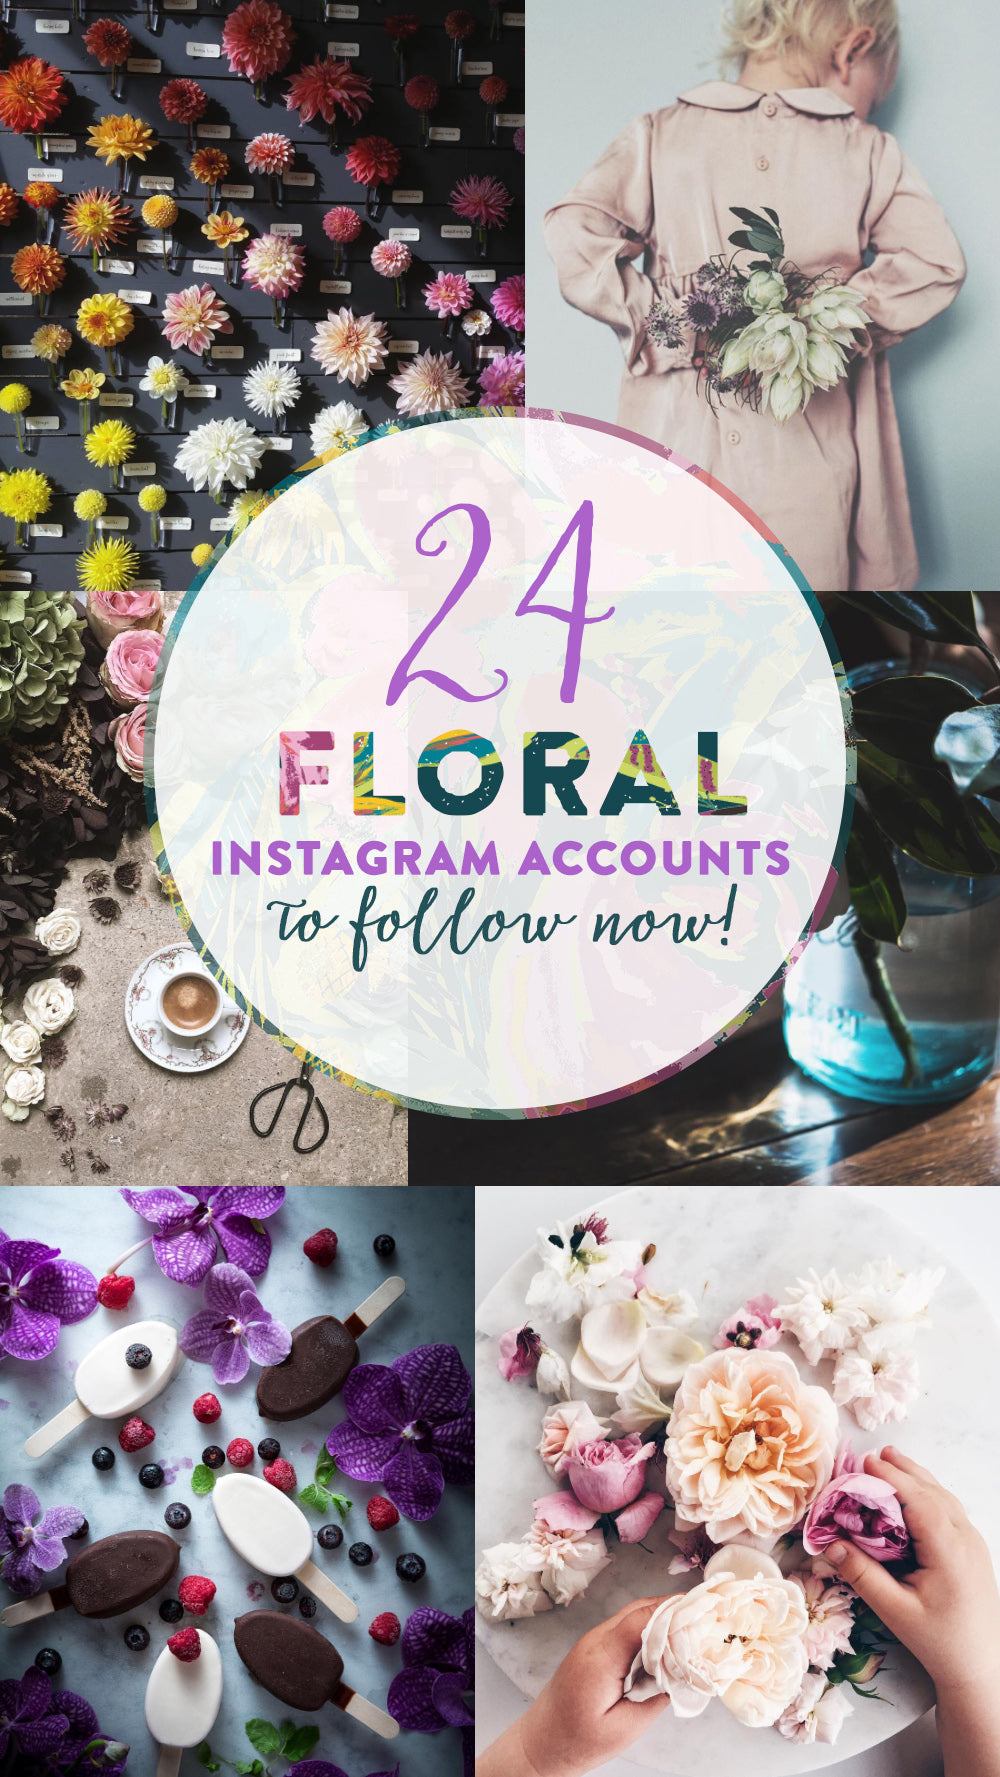 24 Floral Instagram Accounts to follow now!